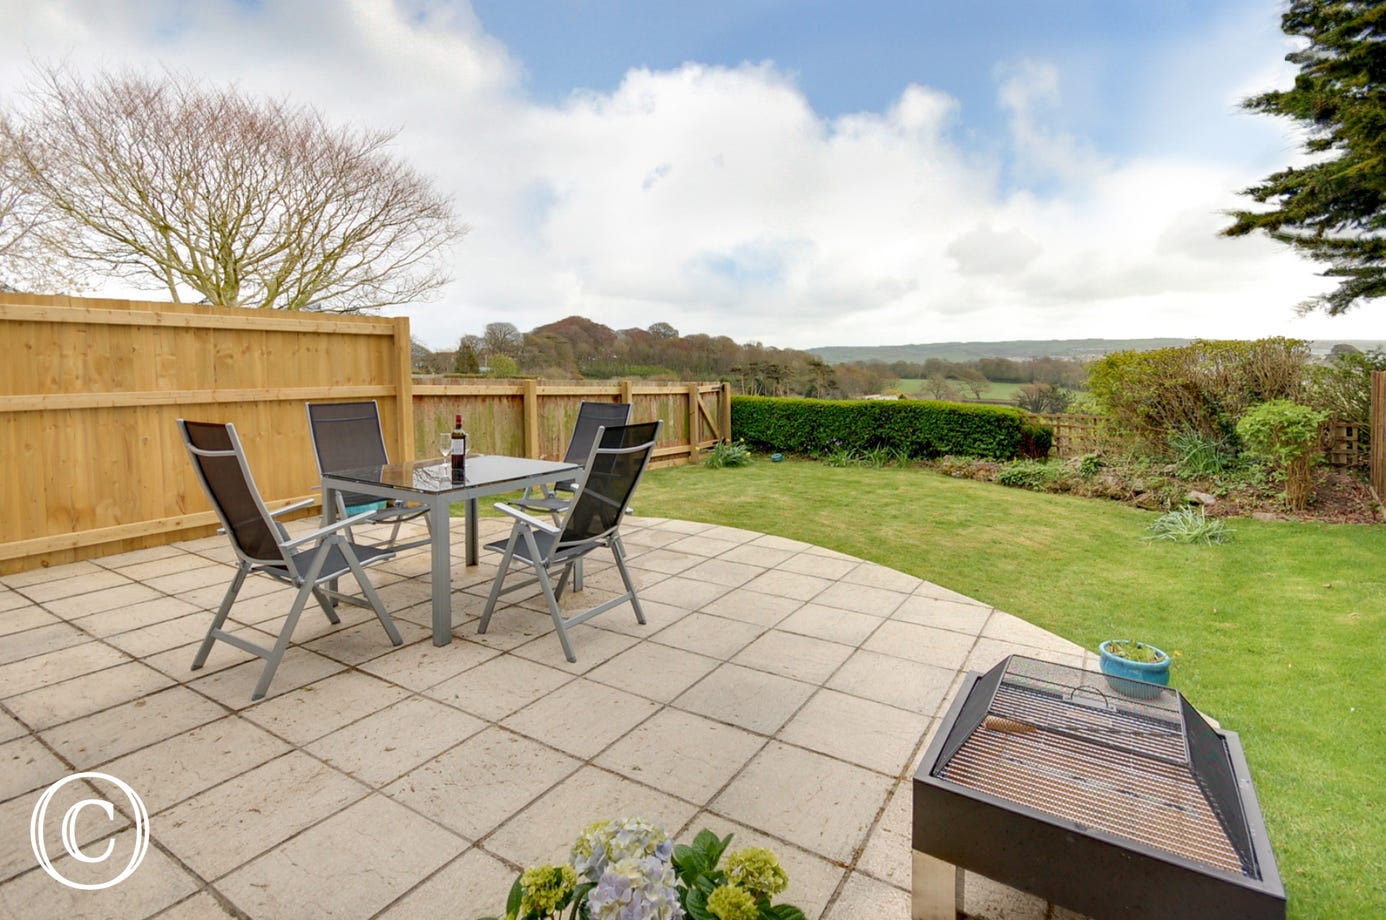 Ideal for enjoying al fresco meals or just a quiet time in the sun, the large patio and fully enclosed garden has garden furniture and a firepit/barbecue